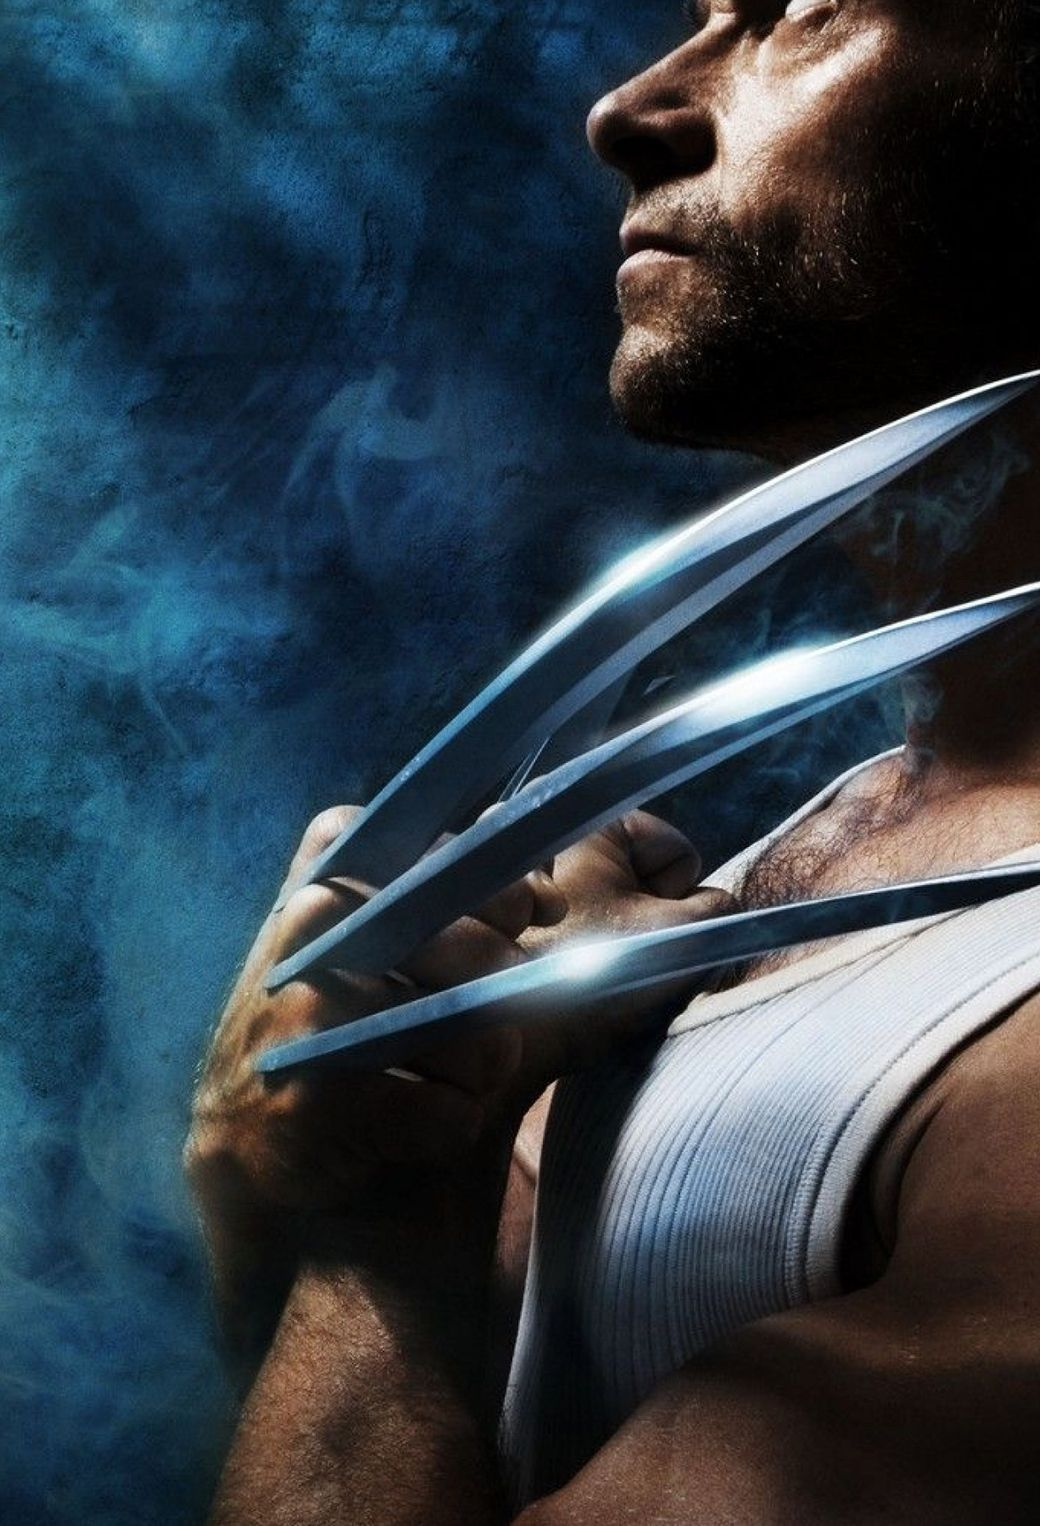 1040x1526 Wolverine Wallpaper for iPhone X, 8, 7, 6 - Free Download on 3Wallpapers